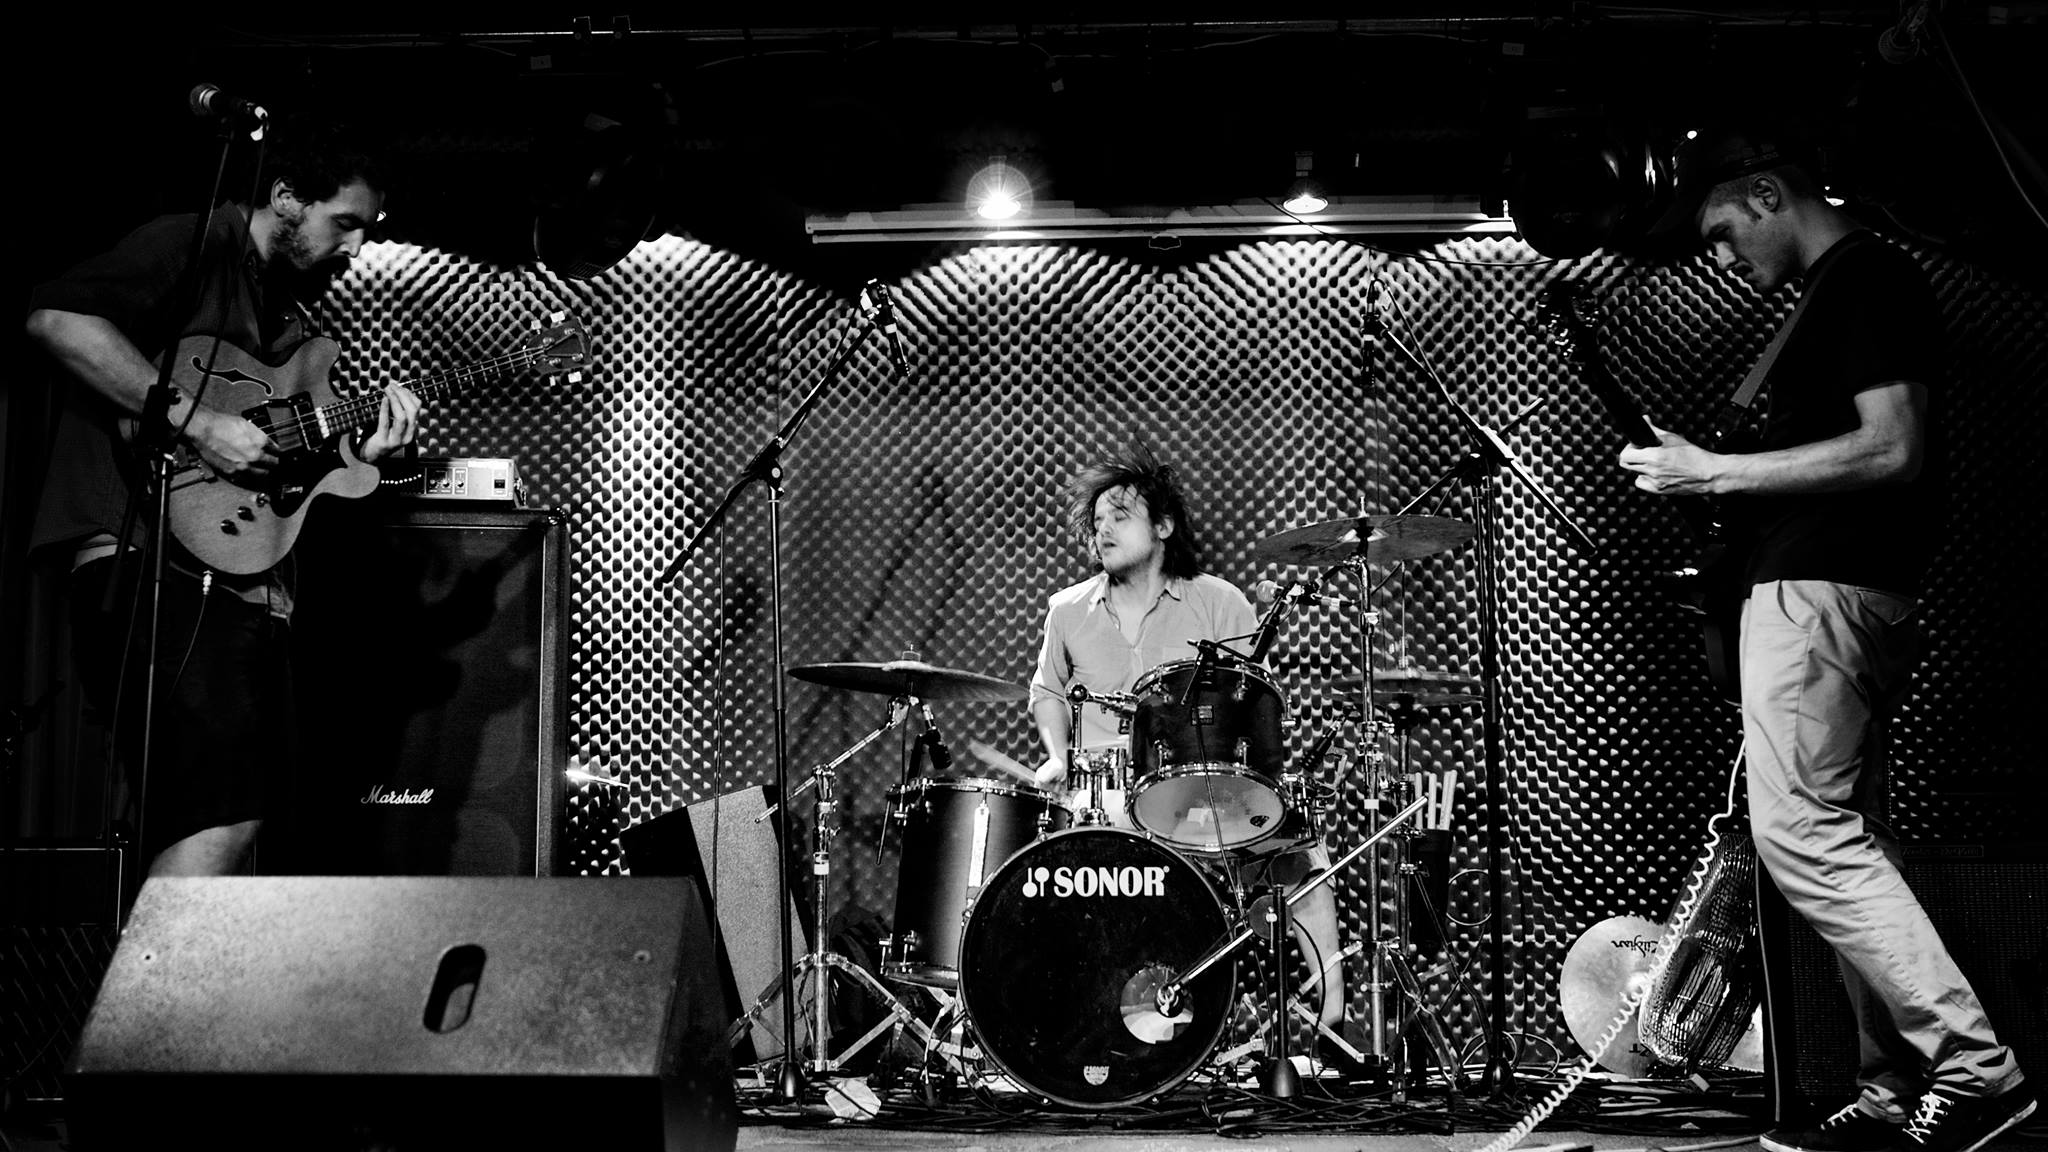 Mundo Musique: Turtle Giant, the Indie Rock Band from Macau/Sao Paolo